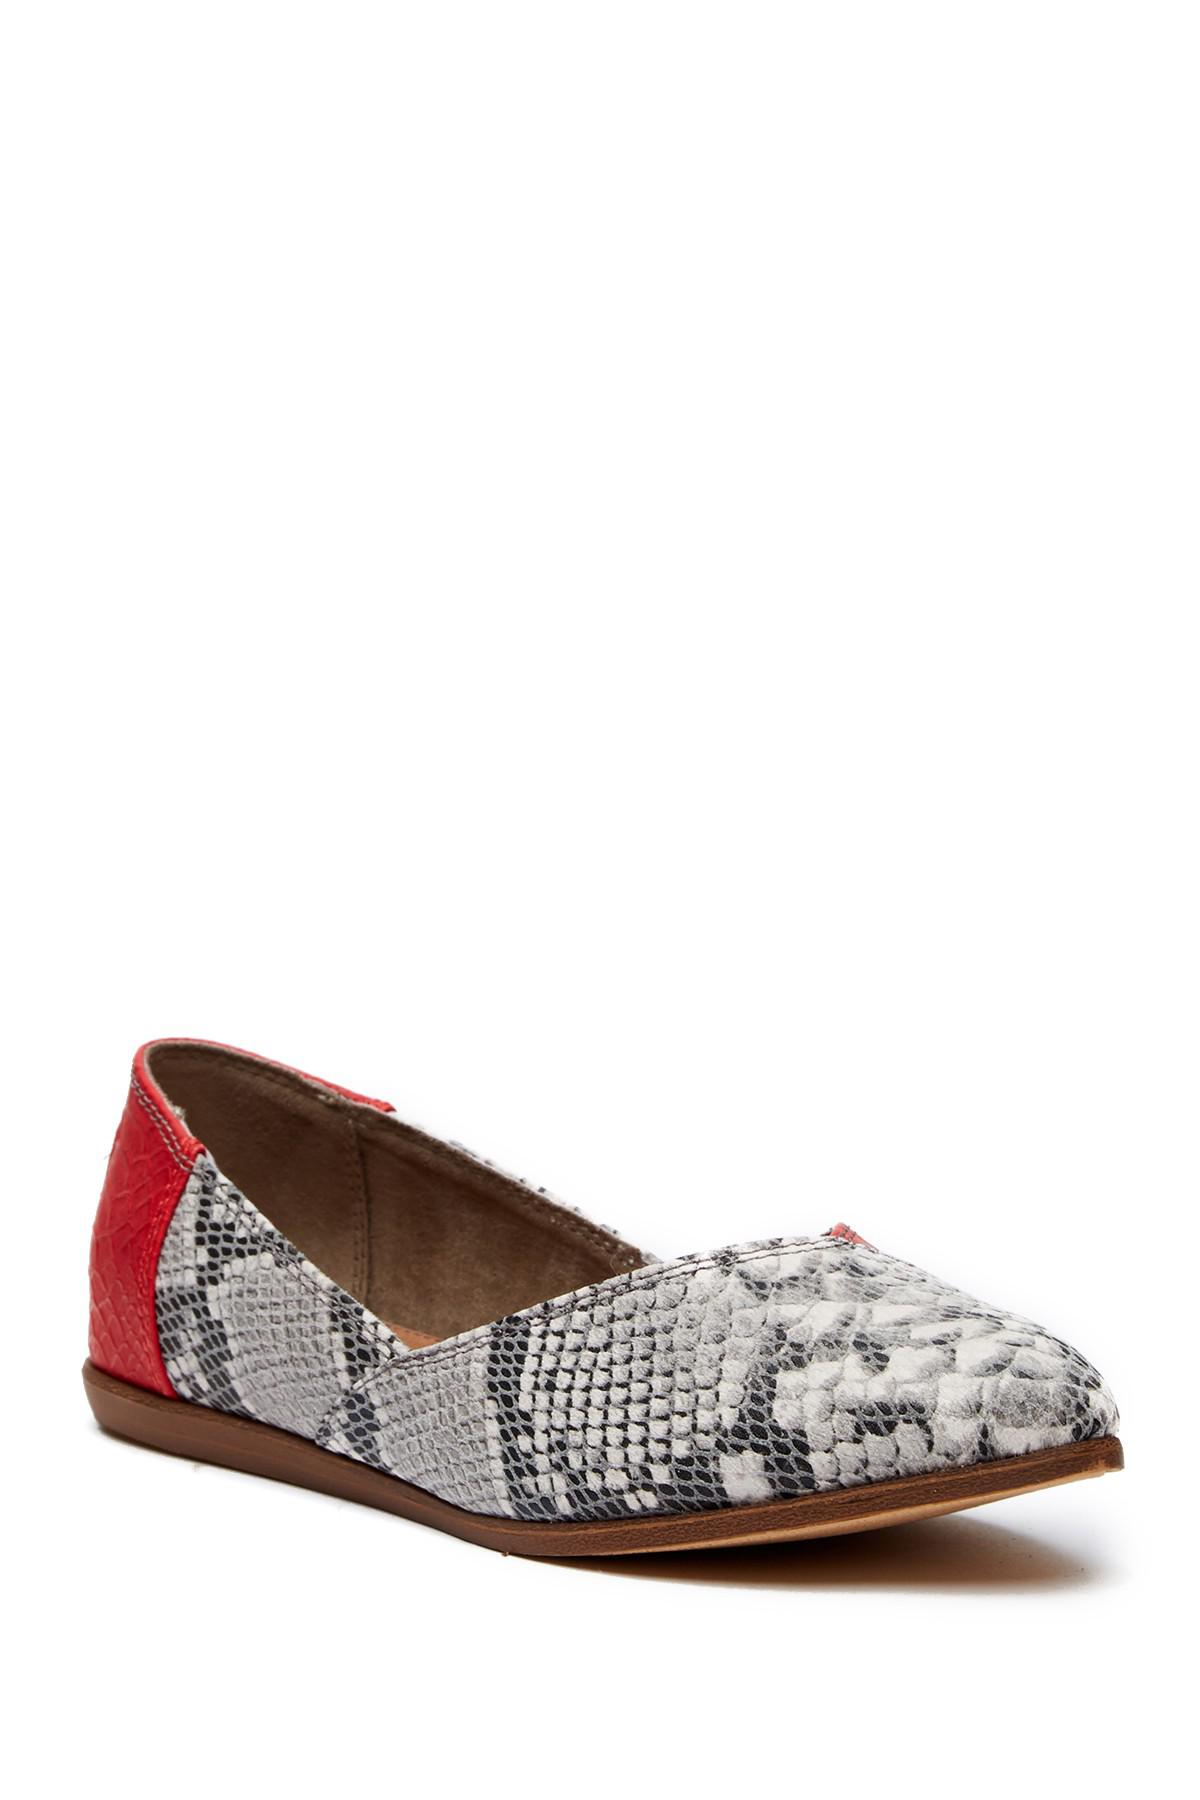 TOMS Jutti Red Snake Print Leather Flat FGzHP4m8b